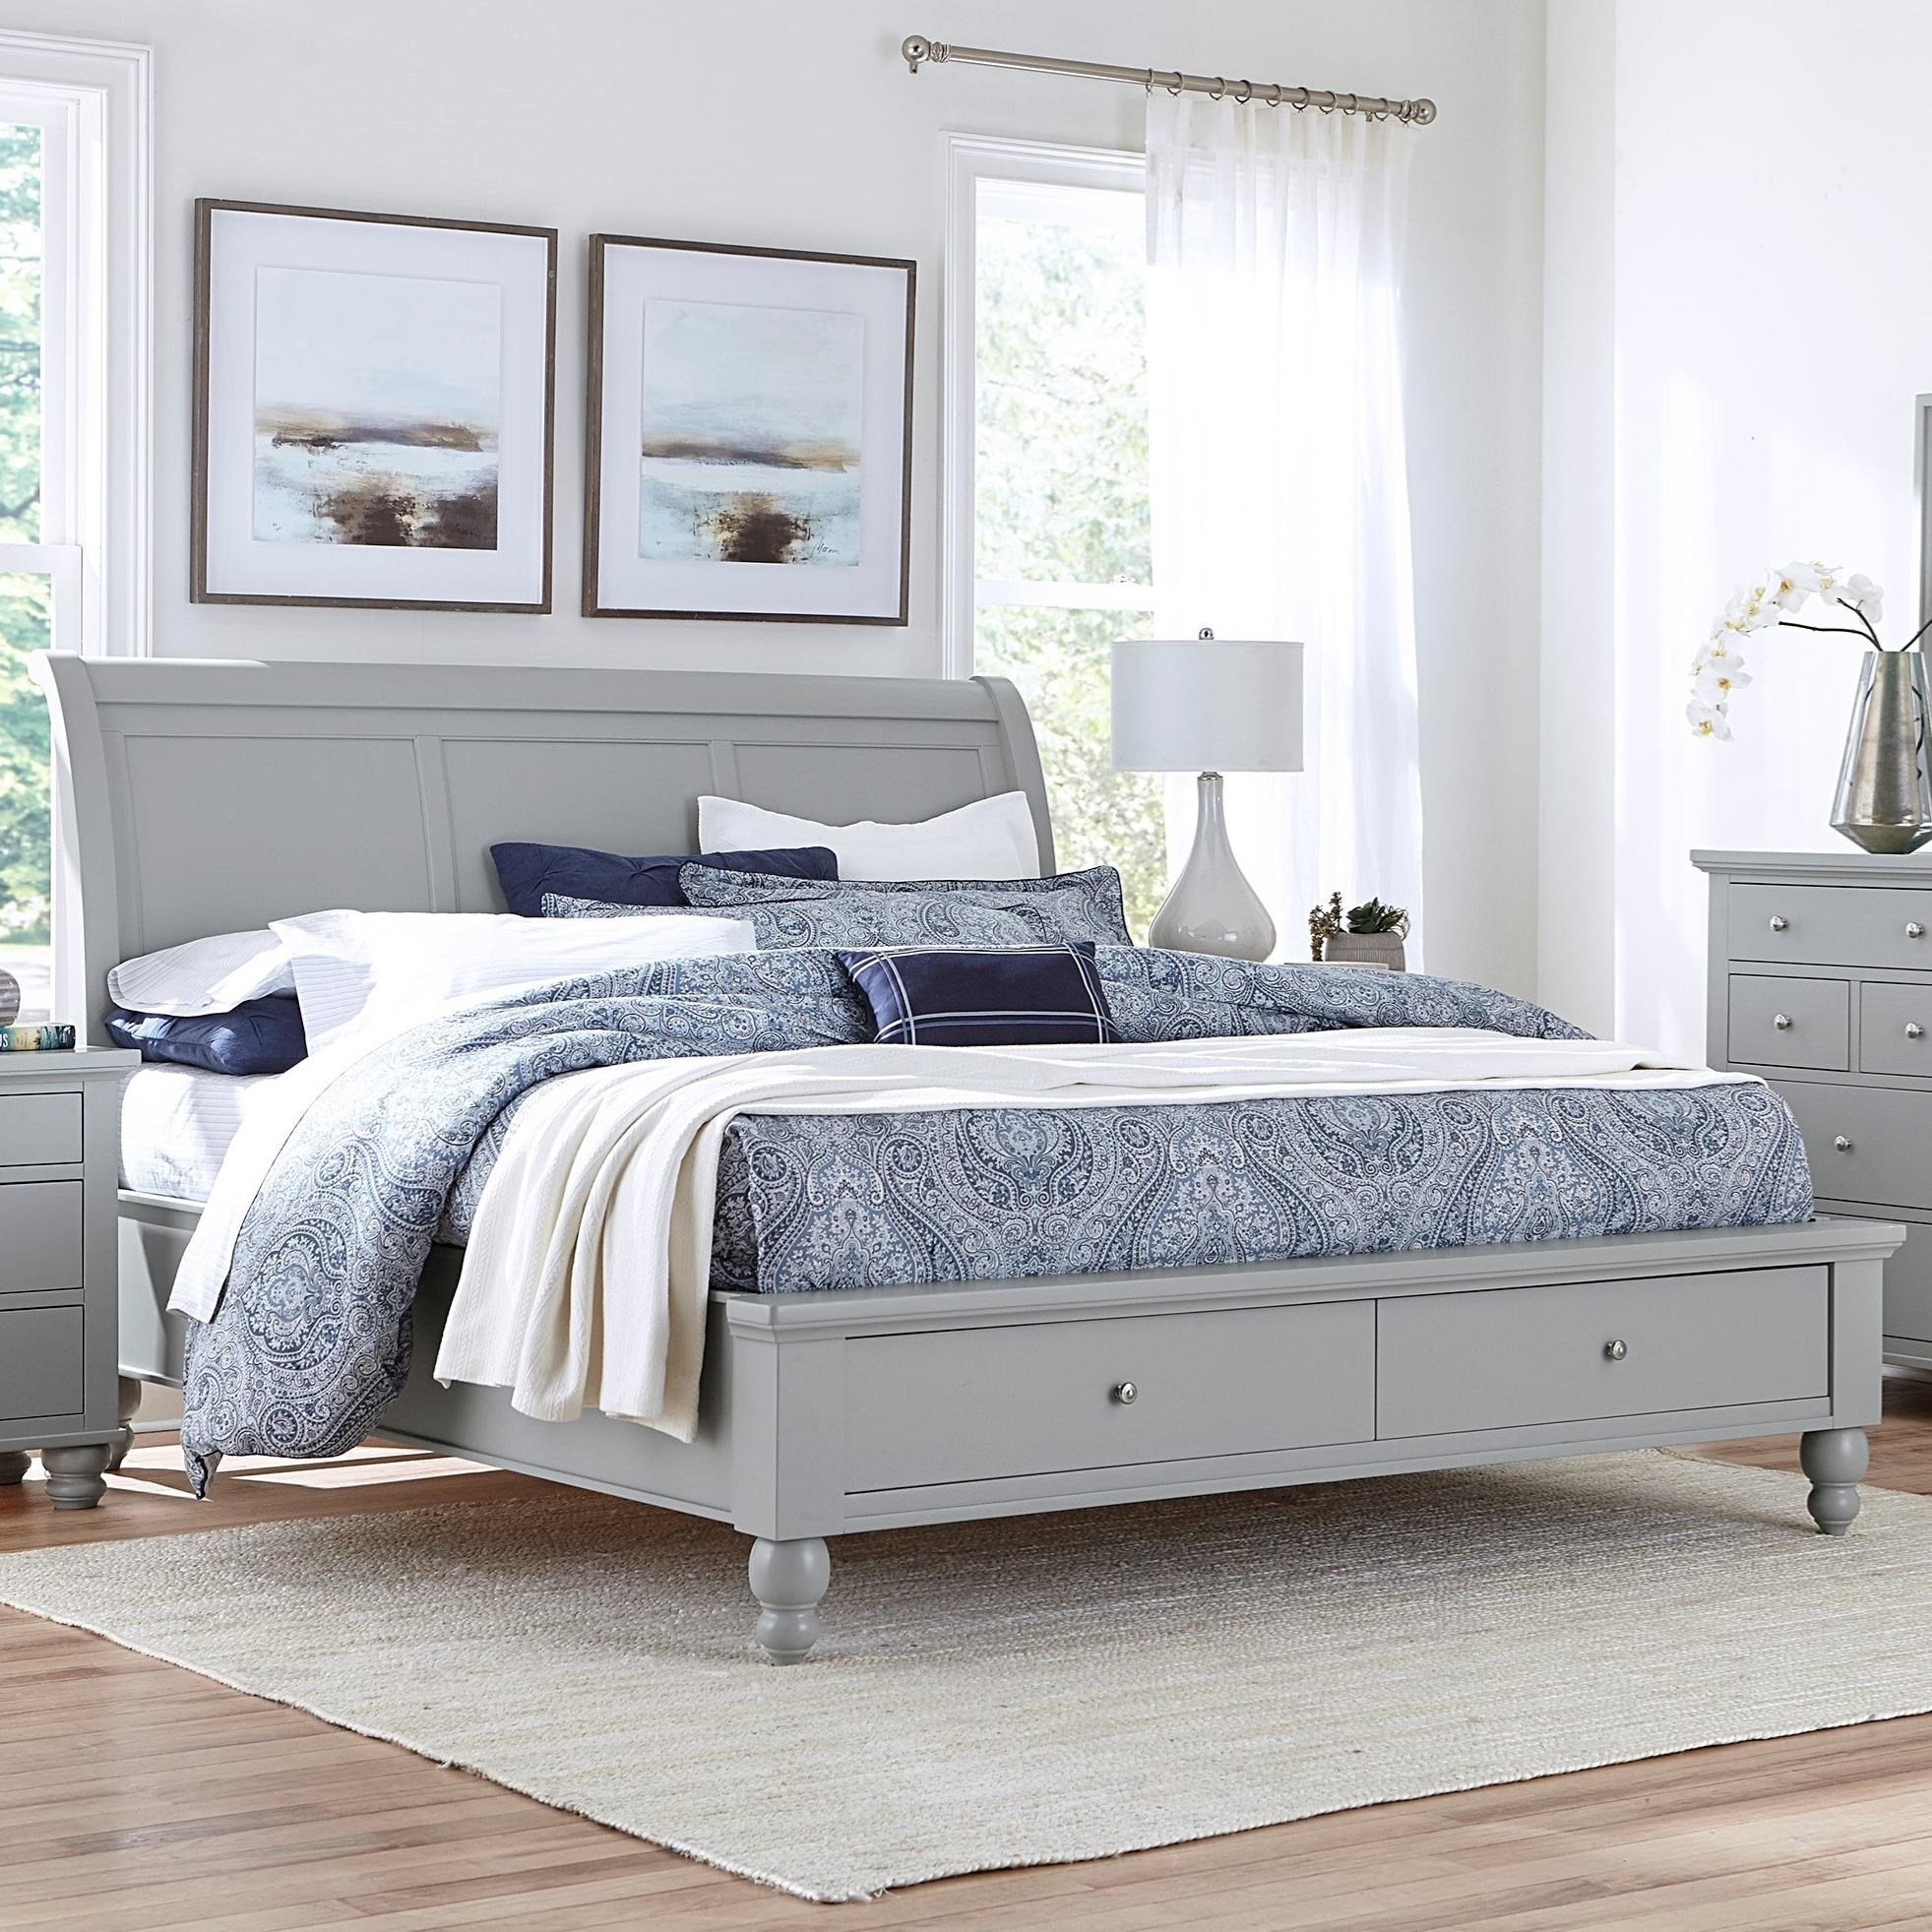 Cambridge California King Storage Sleigh Bed by Aspenhome at Baer's Furniture